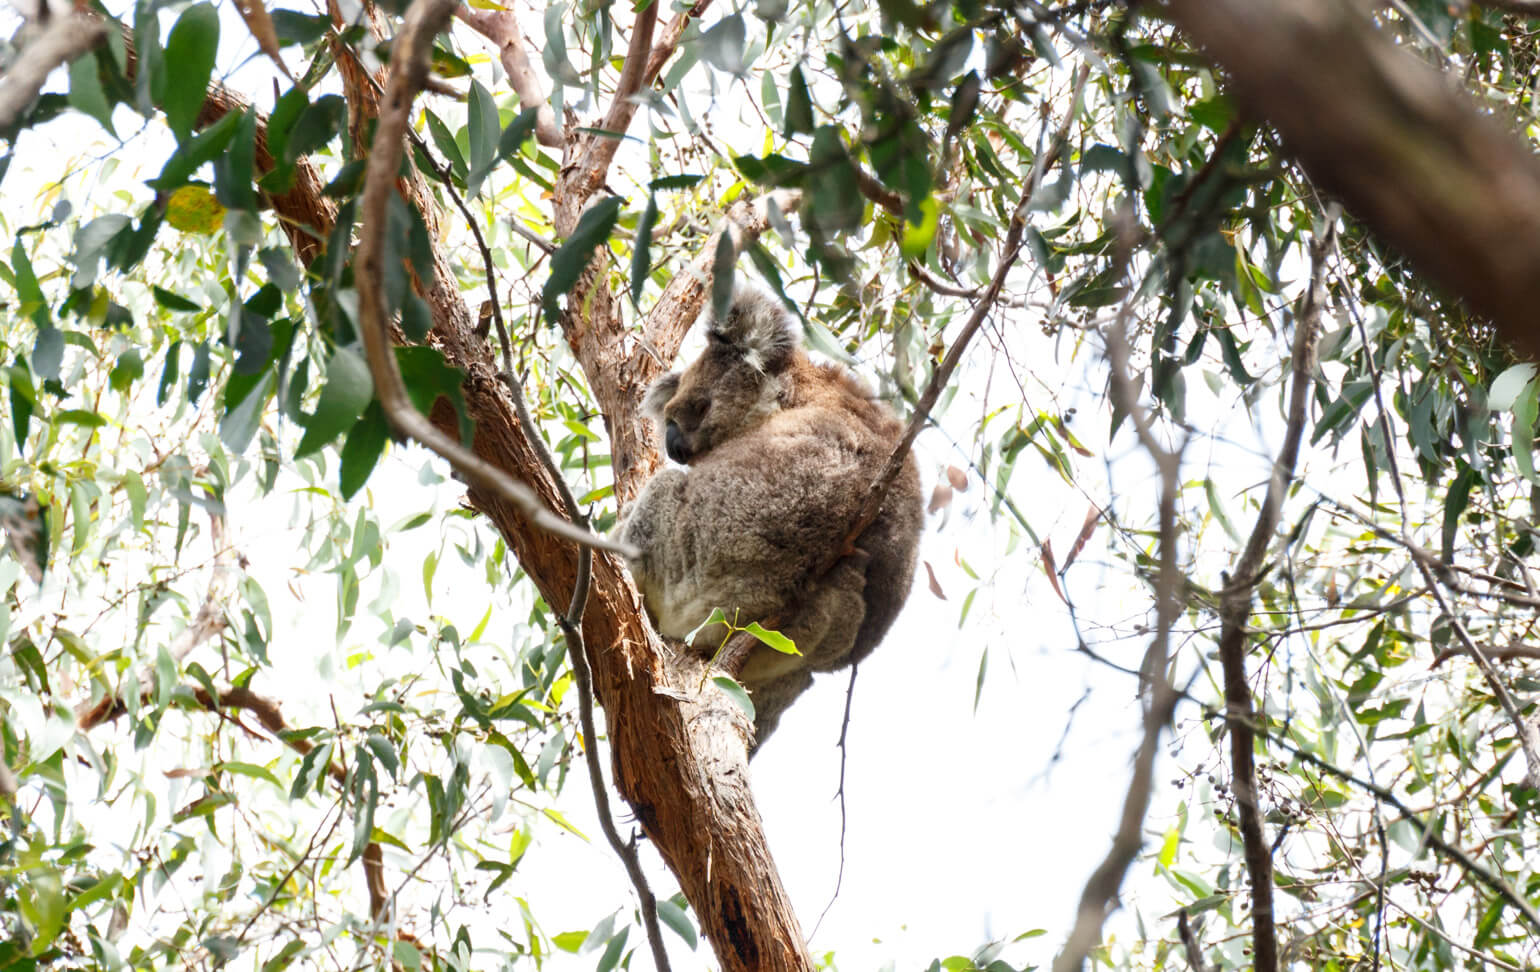 A koala on French Island